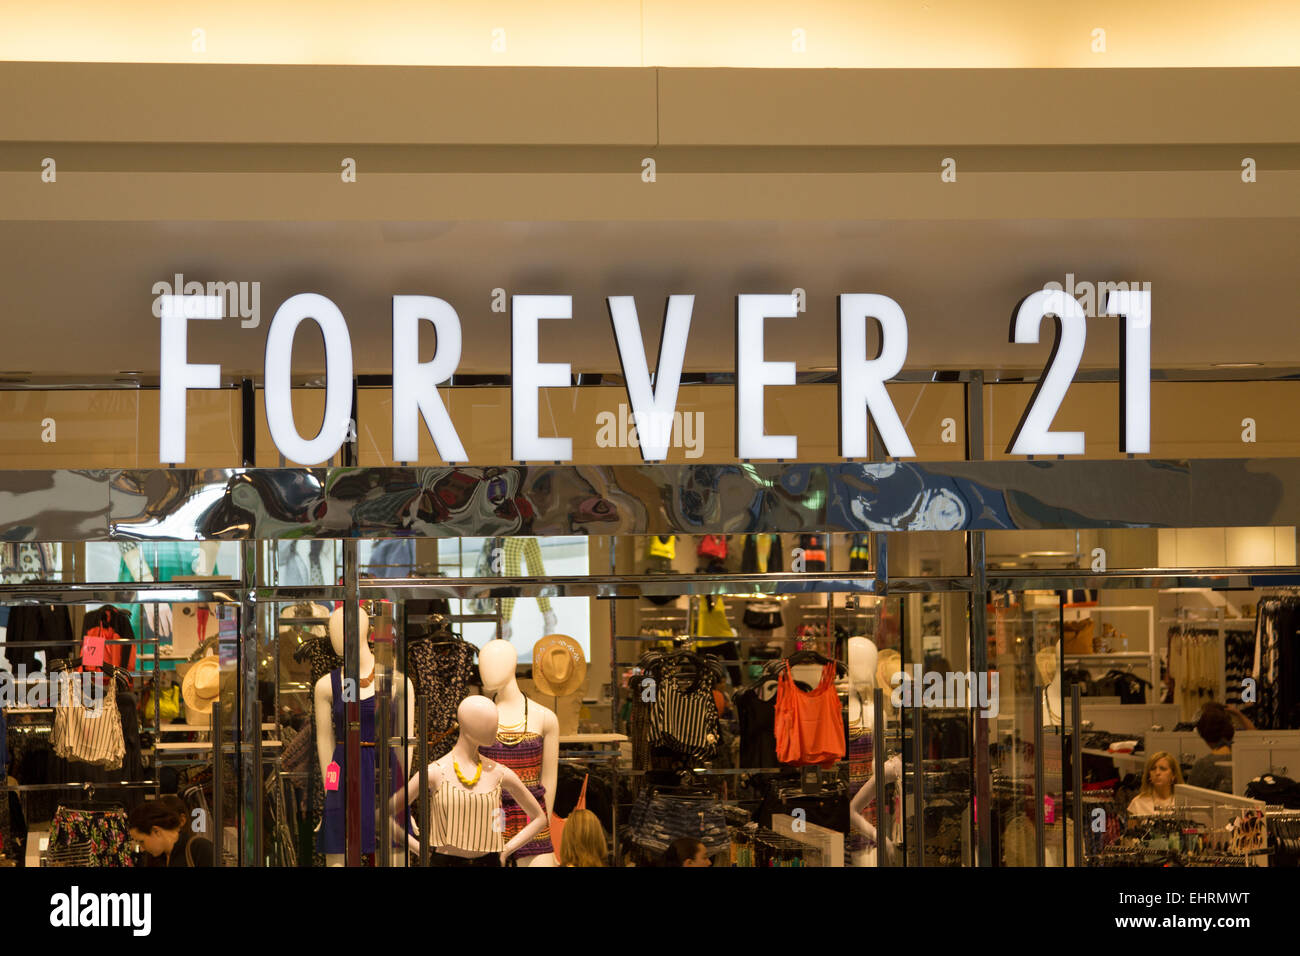 A former Forever 21 employee is suing the retailer over hidden bathroom videos that have uploaded to porn sites, according to a lawsuit filed in New York on Tuesday. The plaintiff, who is listed.